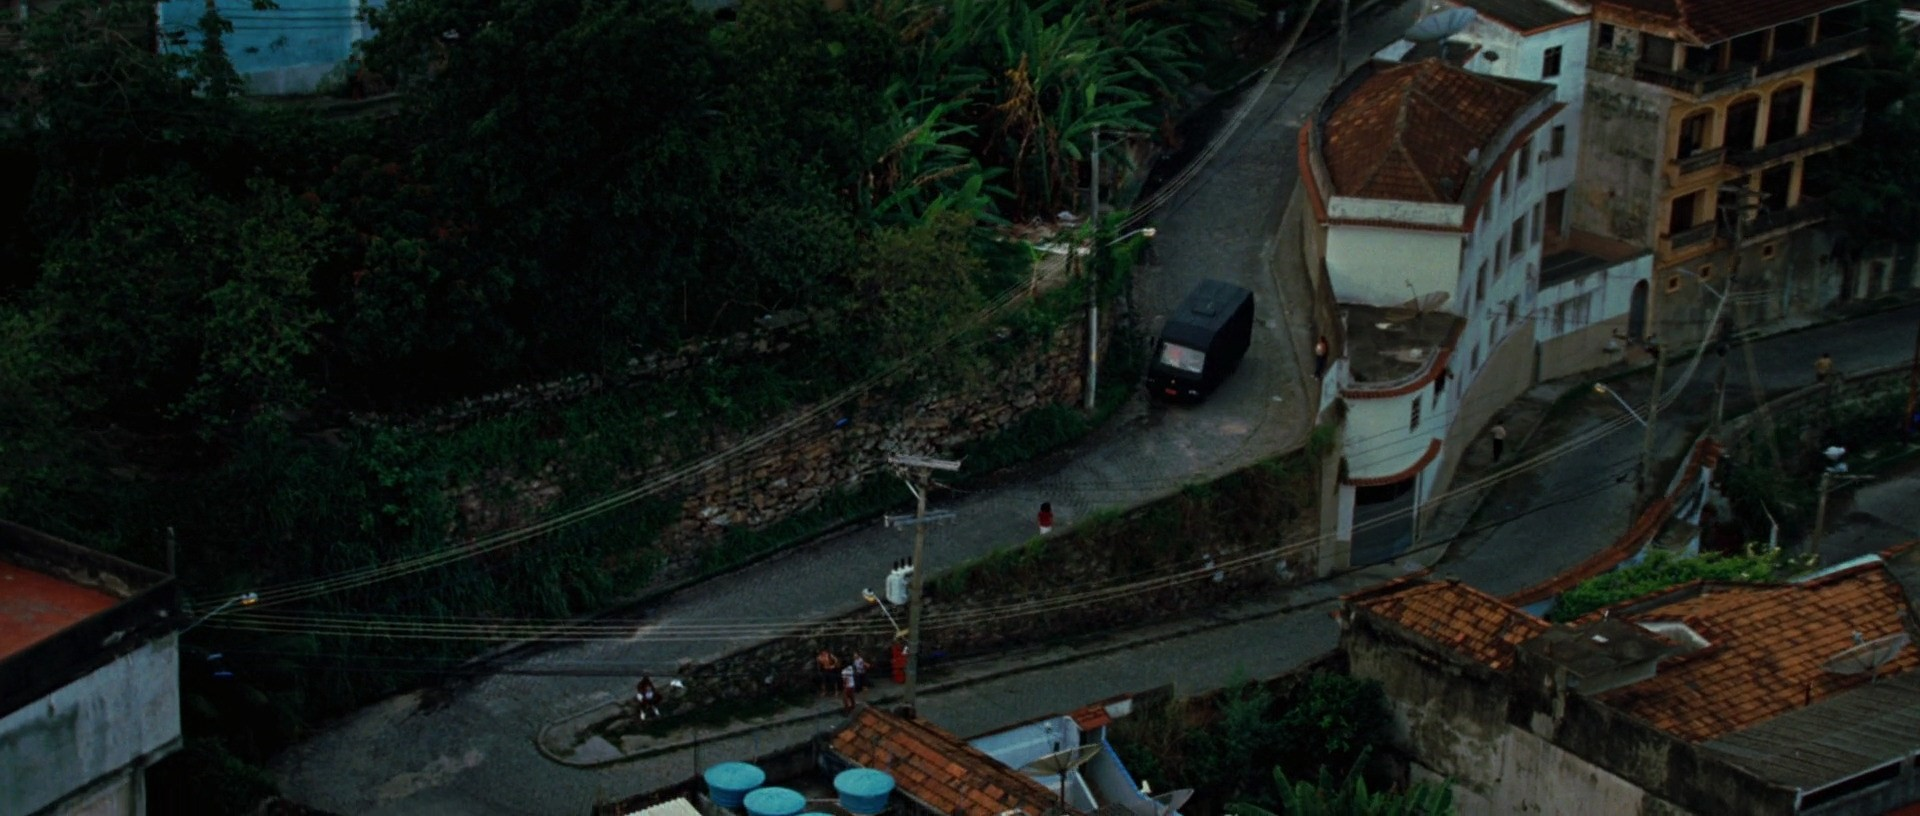 The Incredible Hulk Filming Locations | Rocinha Favela Street